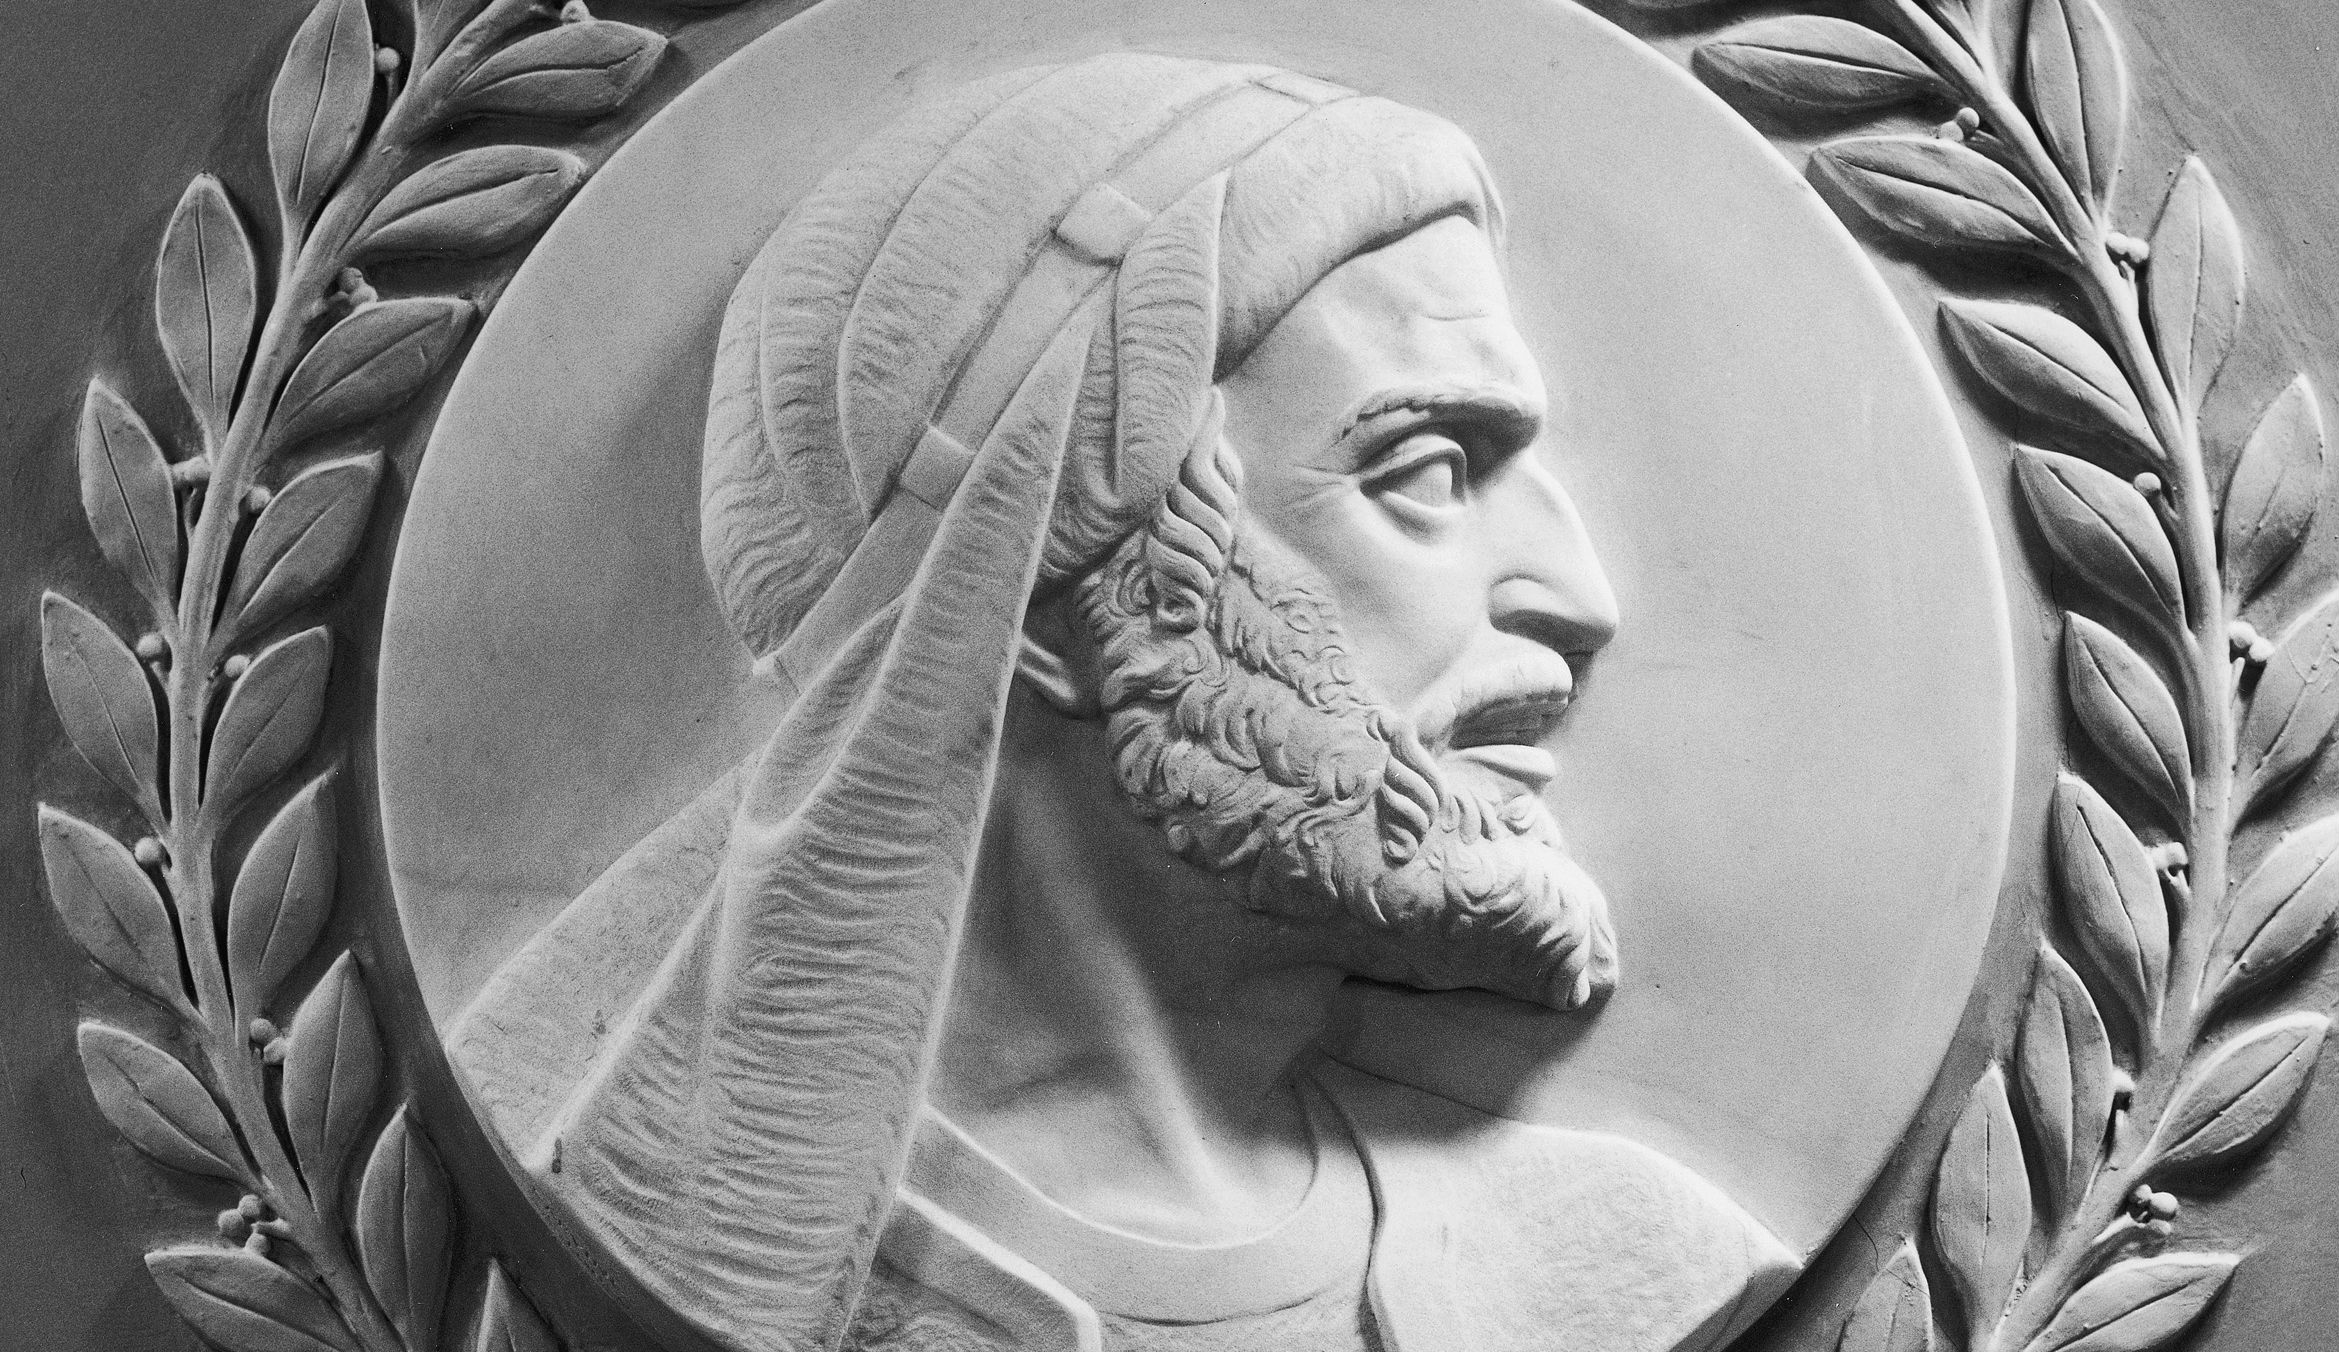 From a sculpture of Maimonides in the U.S. Capitol by Brenda Putnam. Wikipedia.